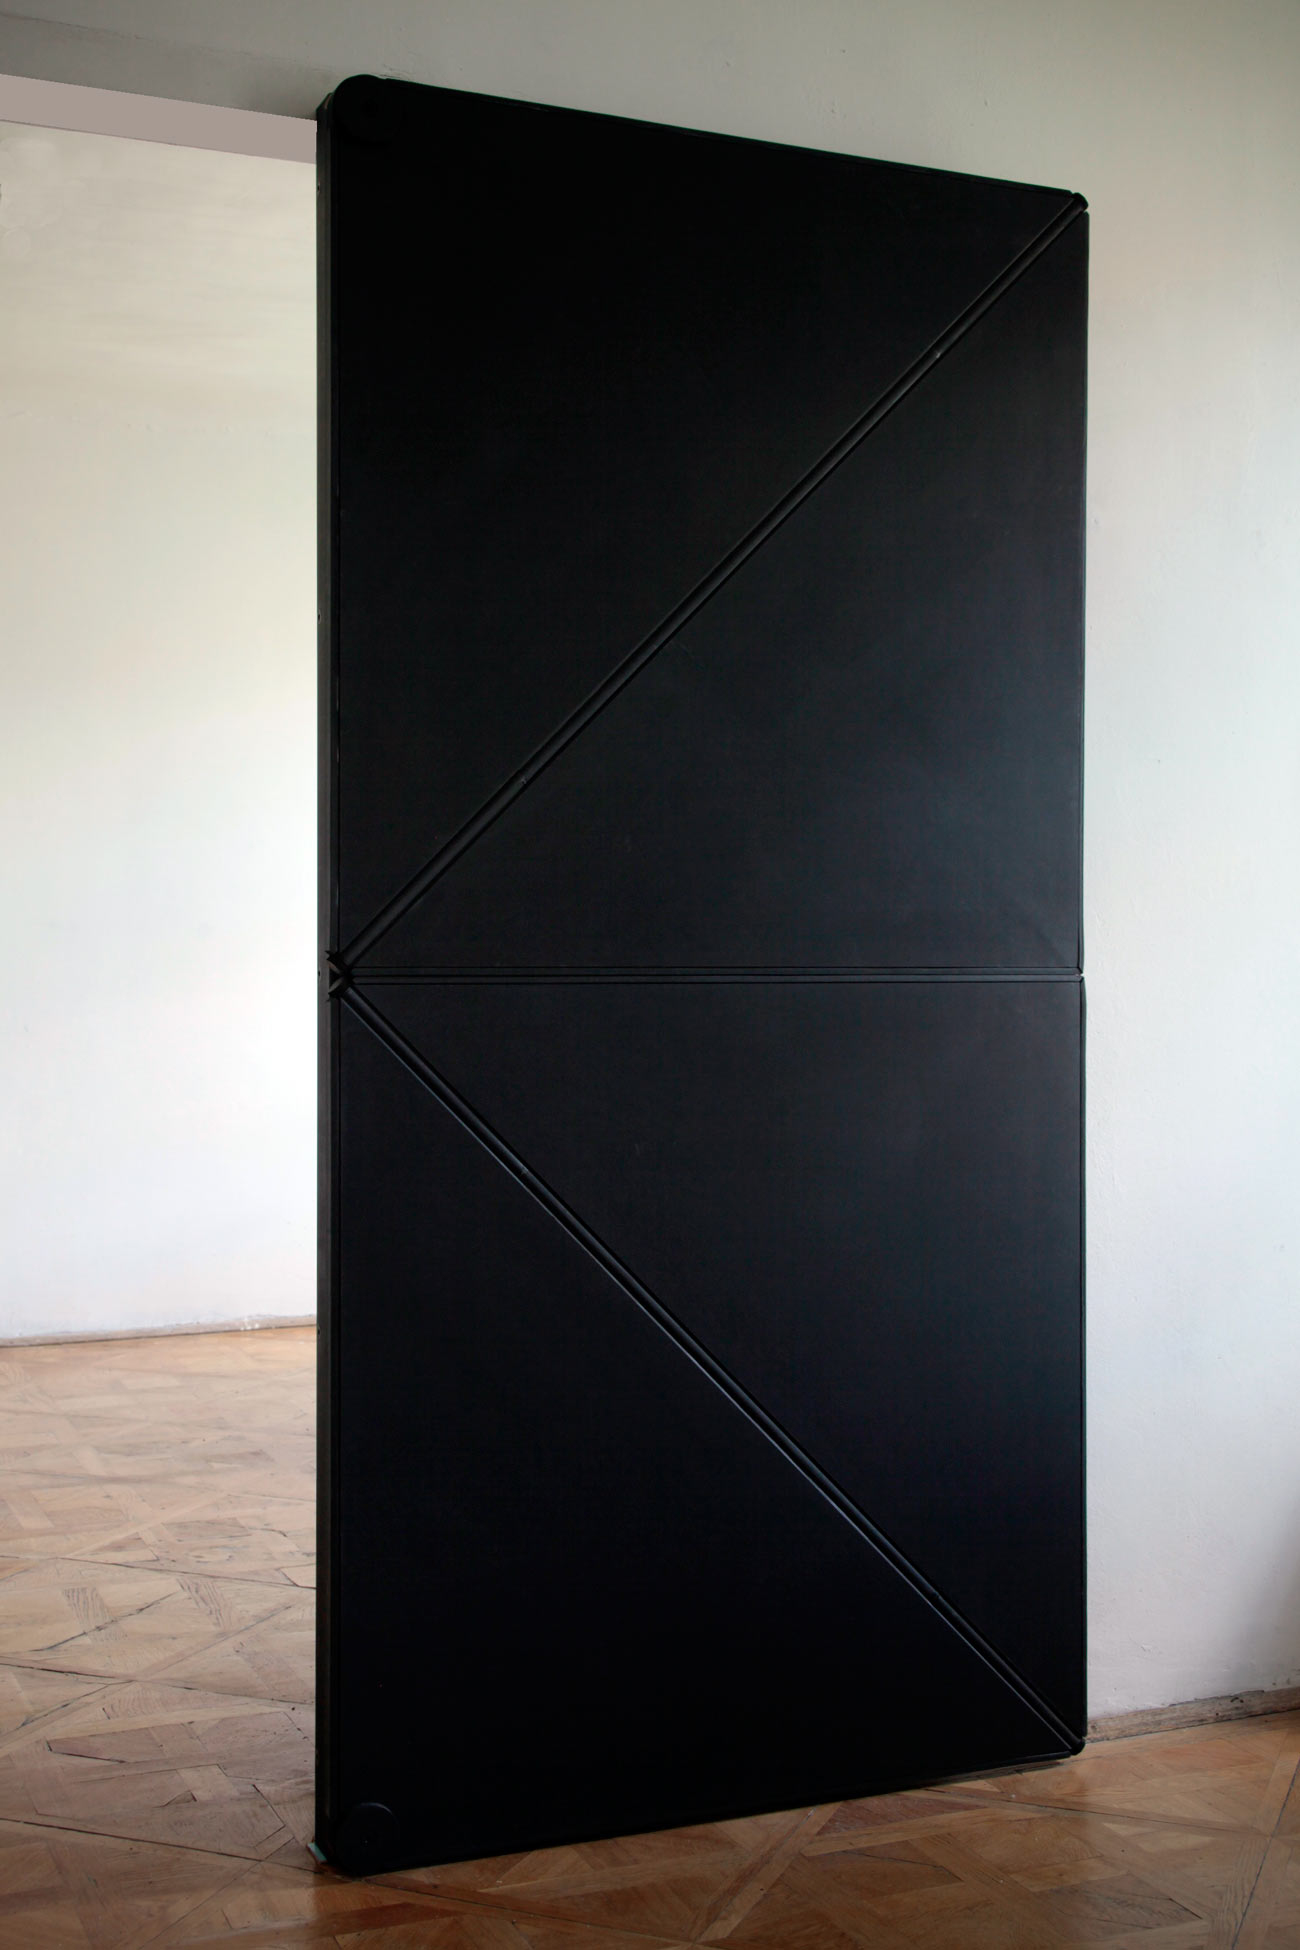 The 7 Most Unique Furniture Designs of All Time unique furniture designs The 7 Most Unique Furniture Designs of All Time 7 unique furniture designs of all time evolution door 1